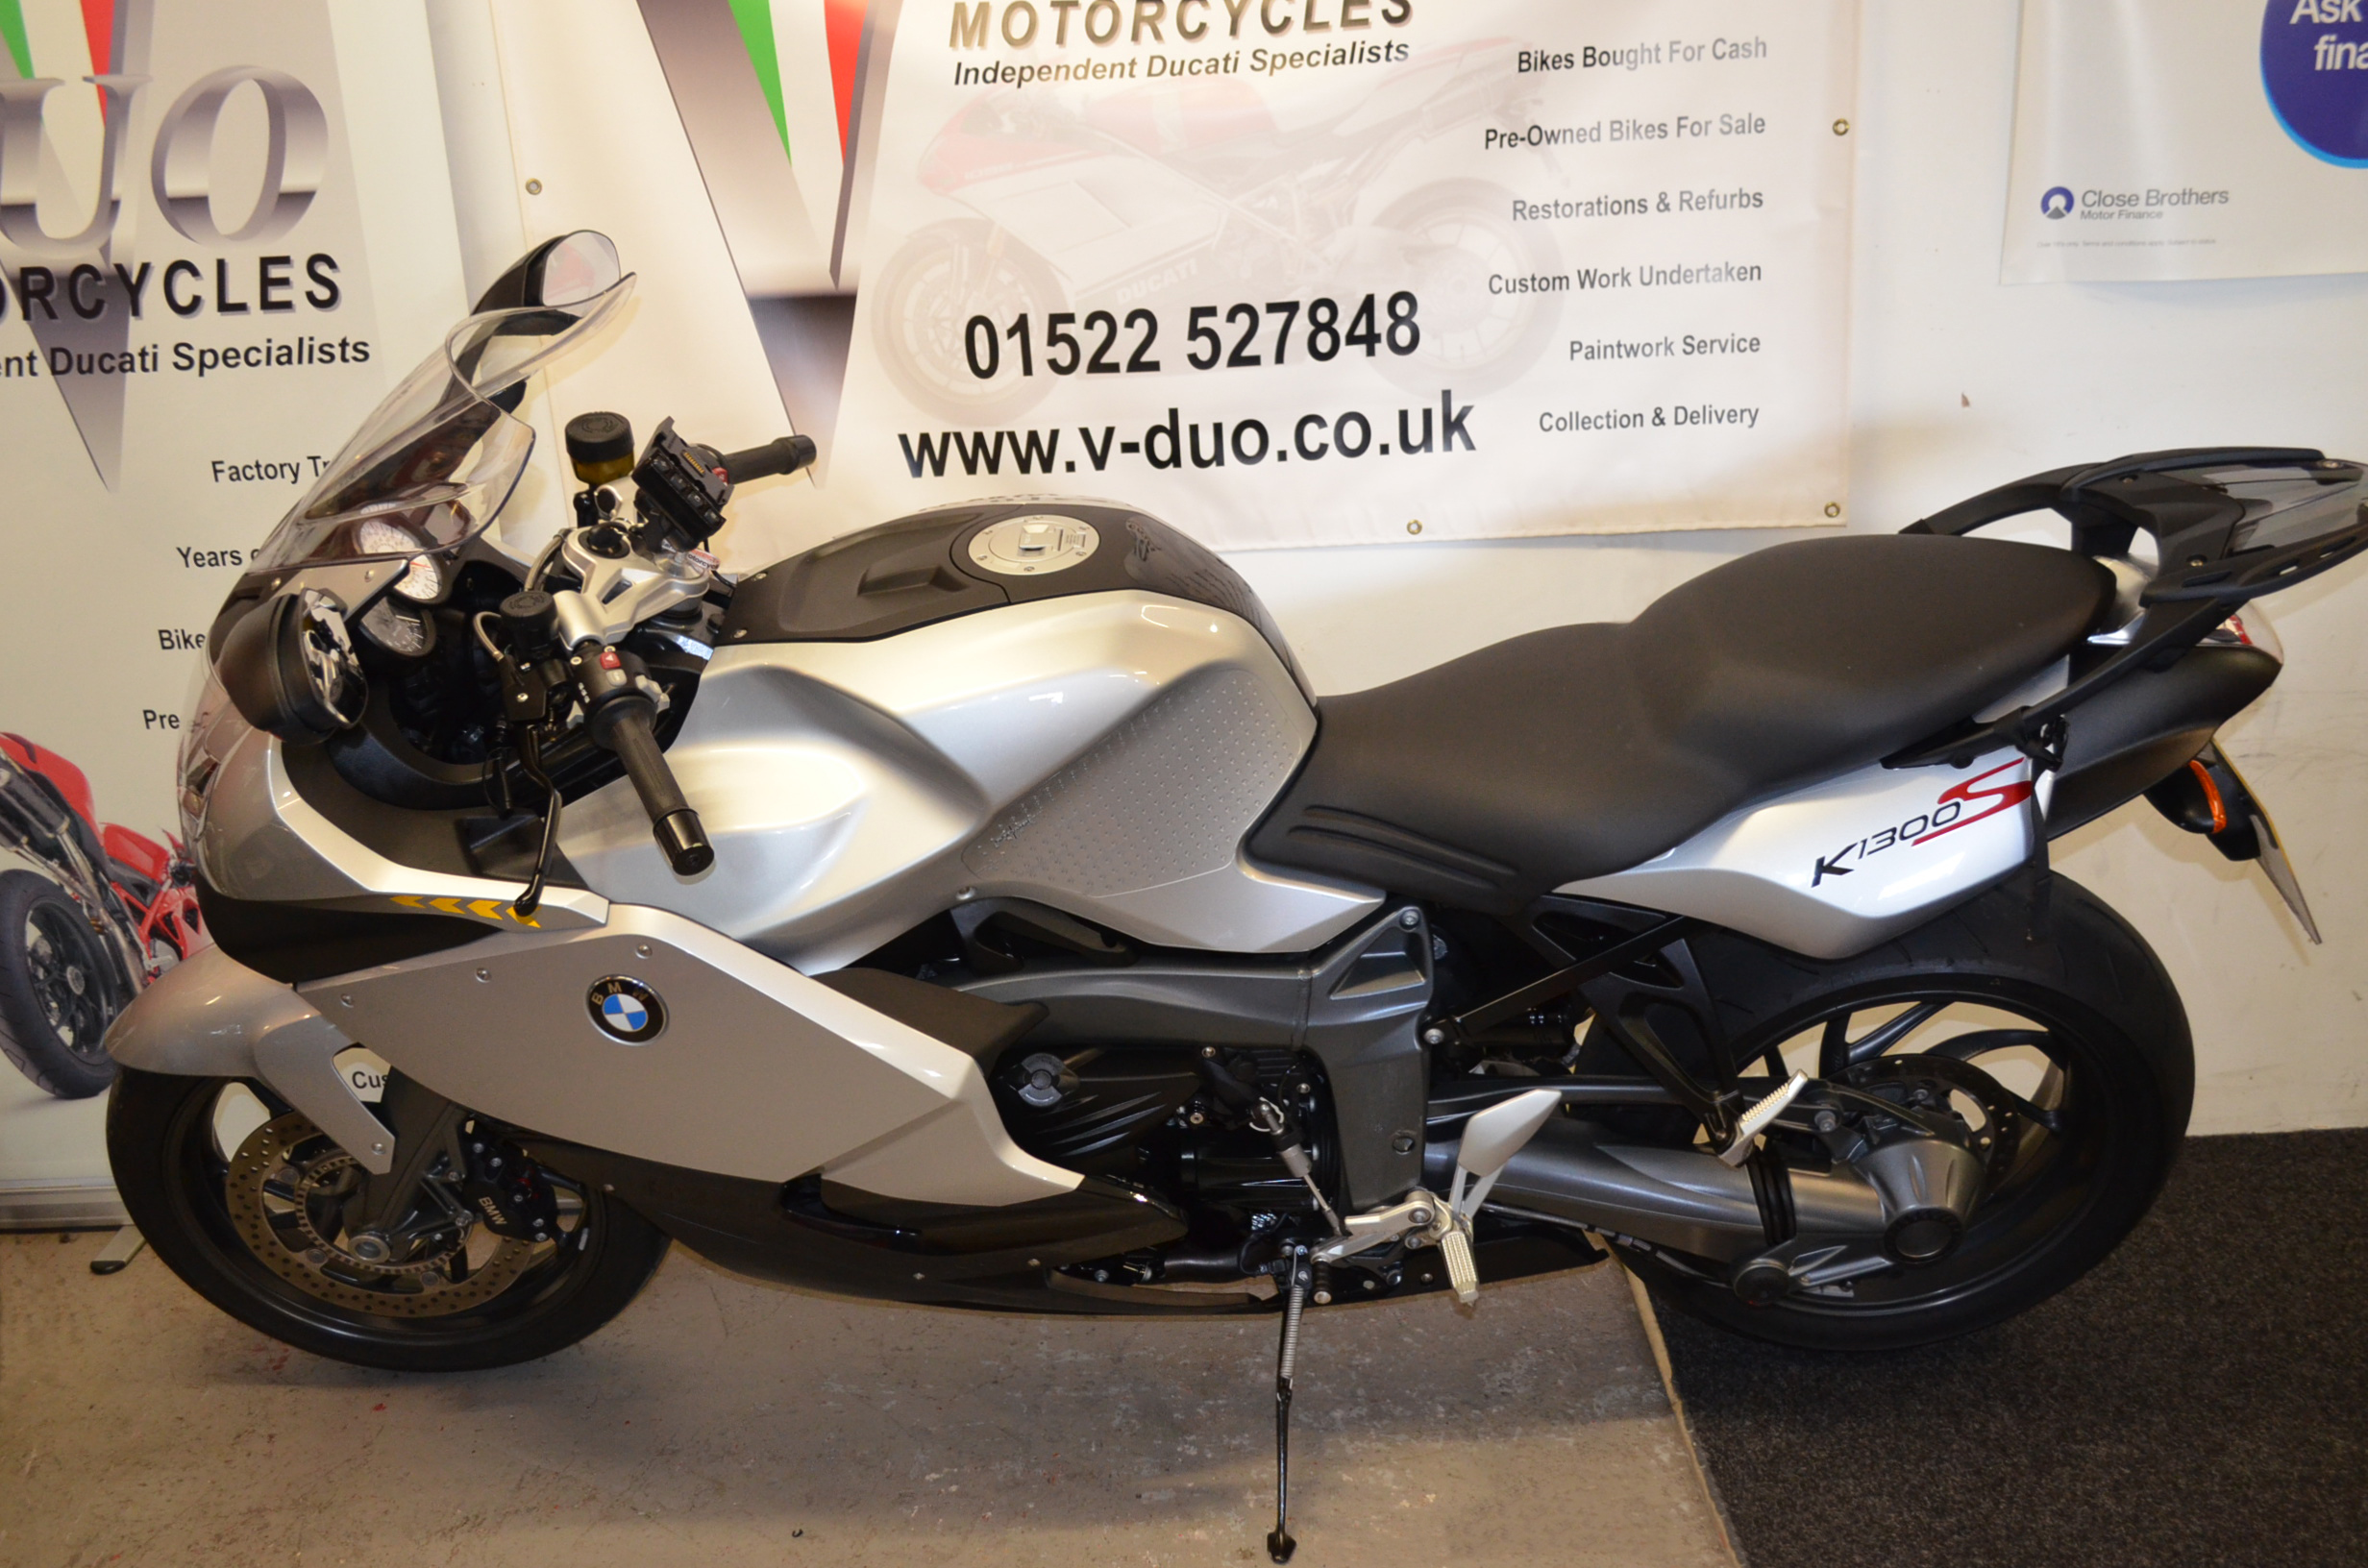 bmw k1300s 542 miles from new vduo motorcycles. Black Bedroom Furniture Sets. Home Design Ideas